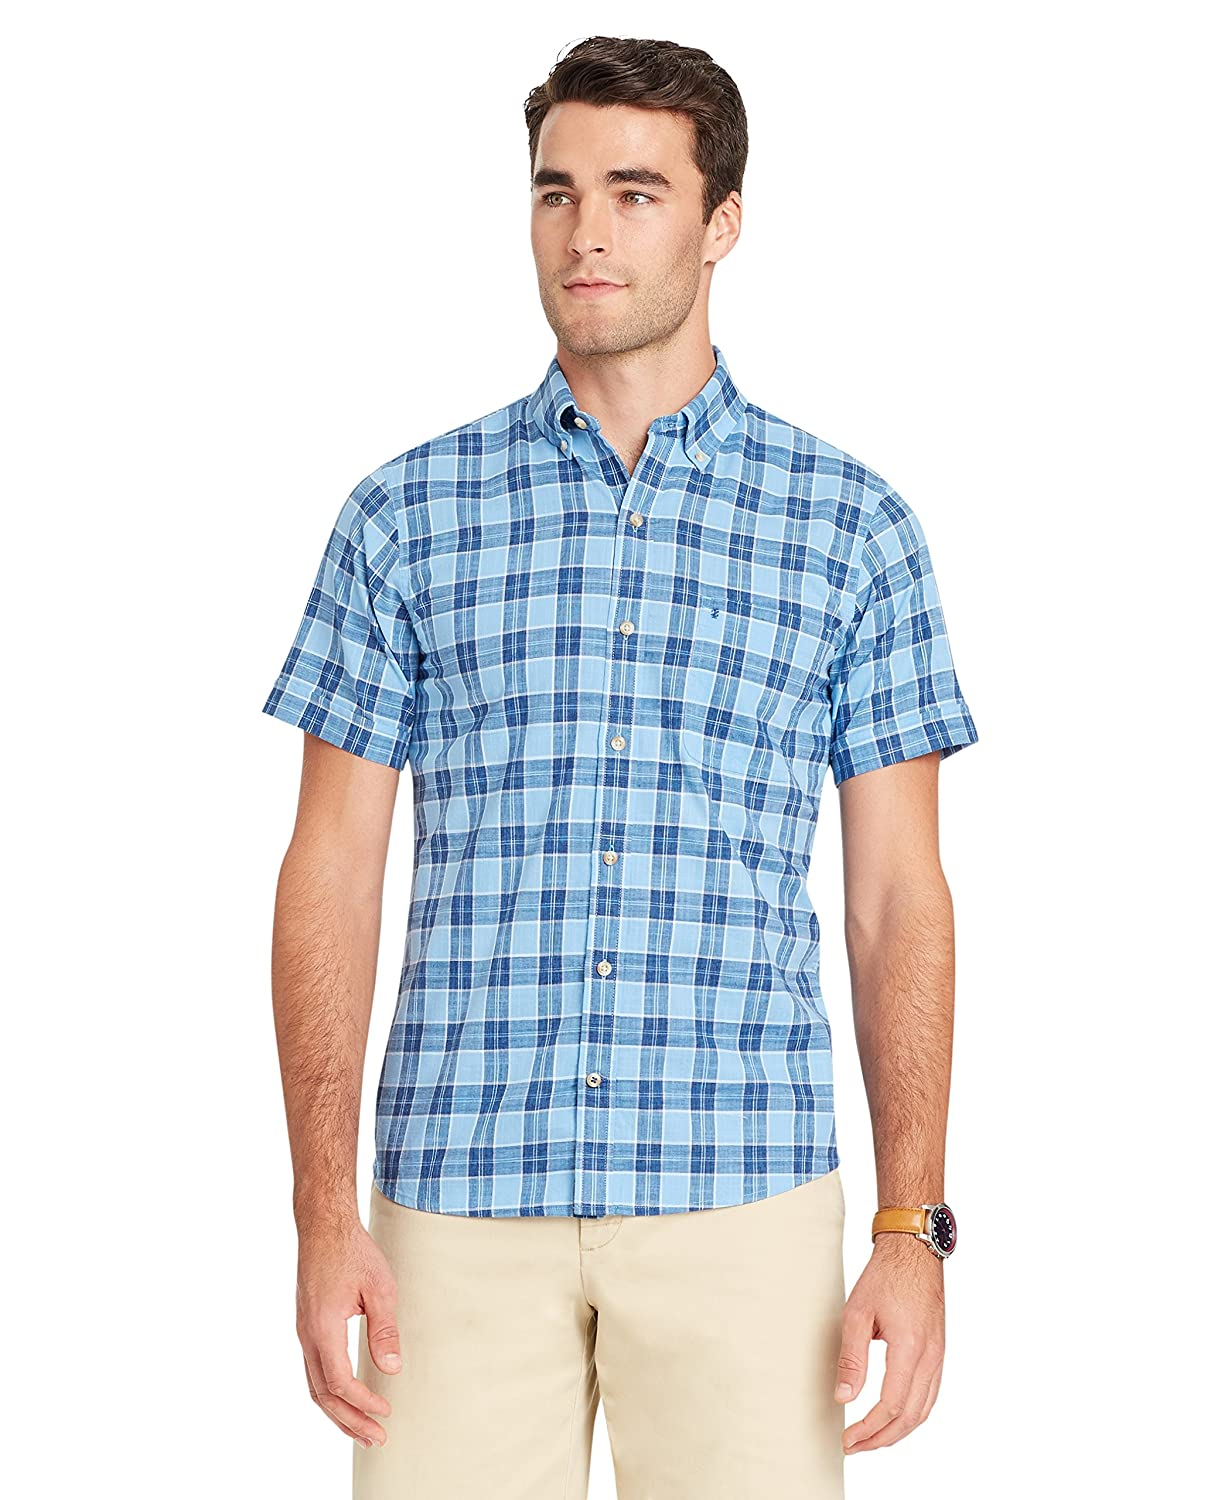 IZOD Men's Saltwater Dockside Chambray Plaid Short Sleeve Shirt 82SW898